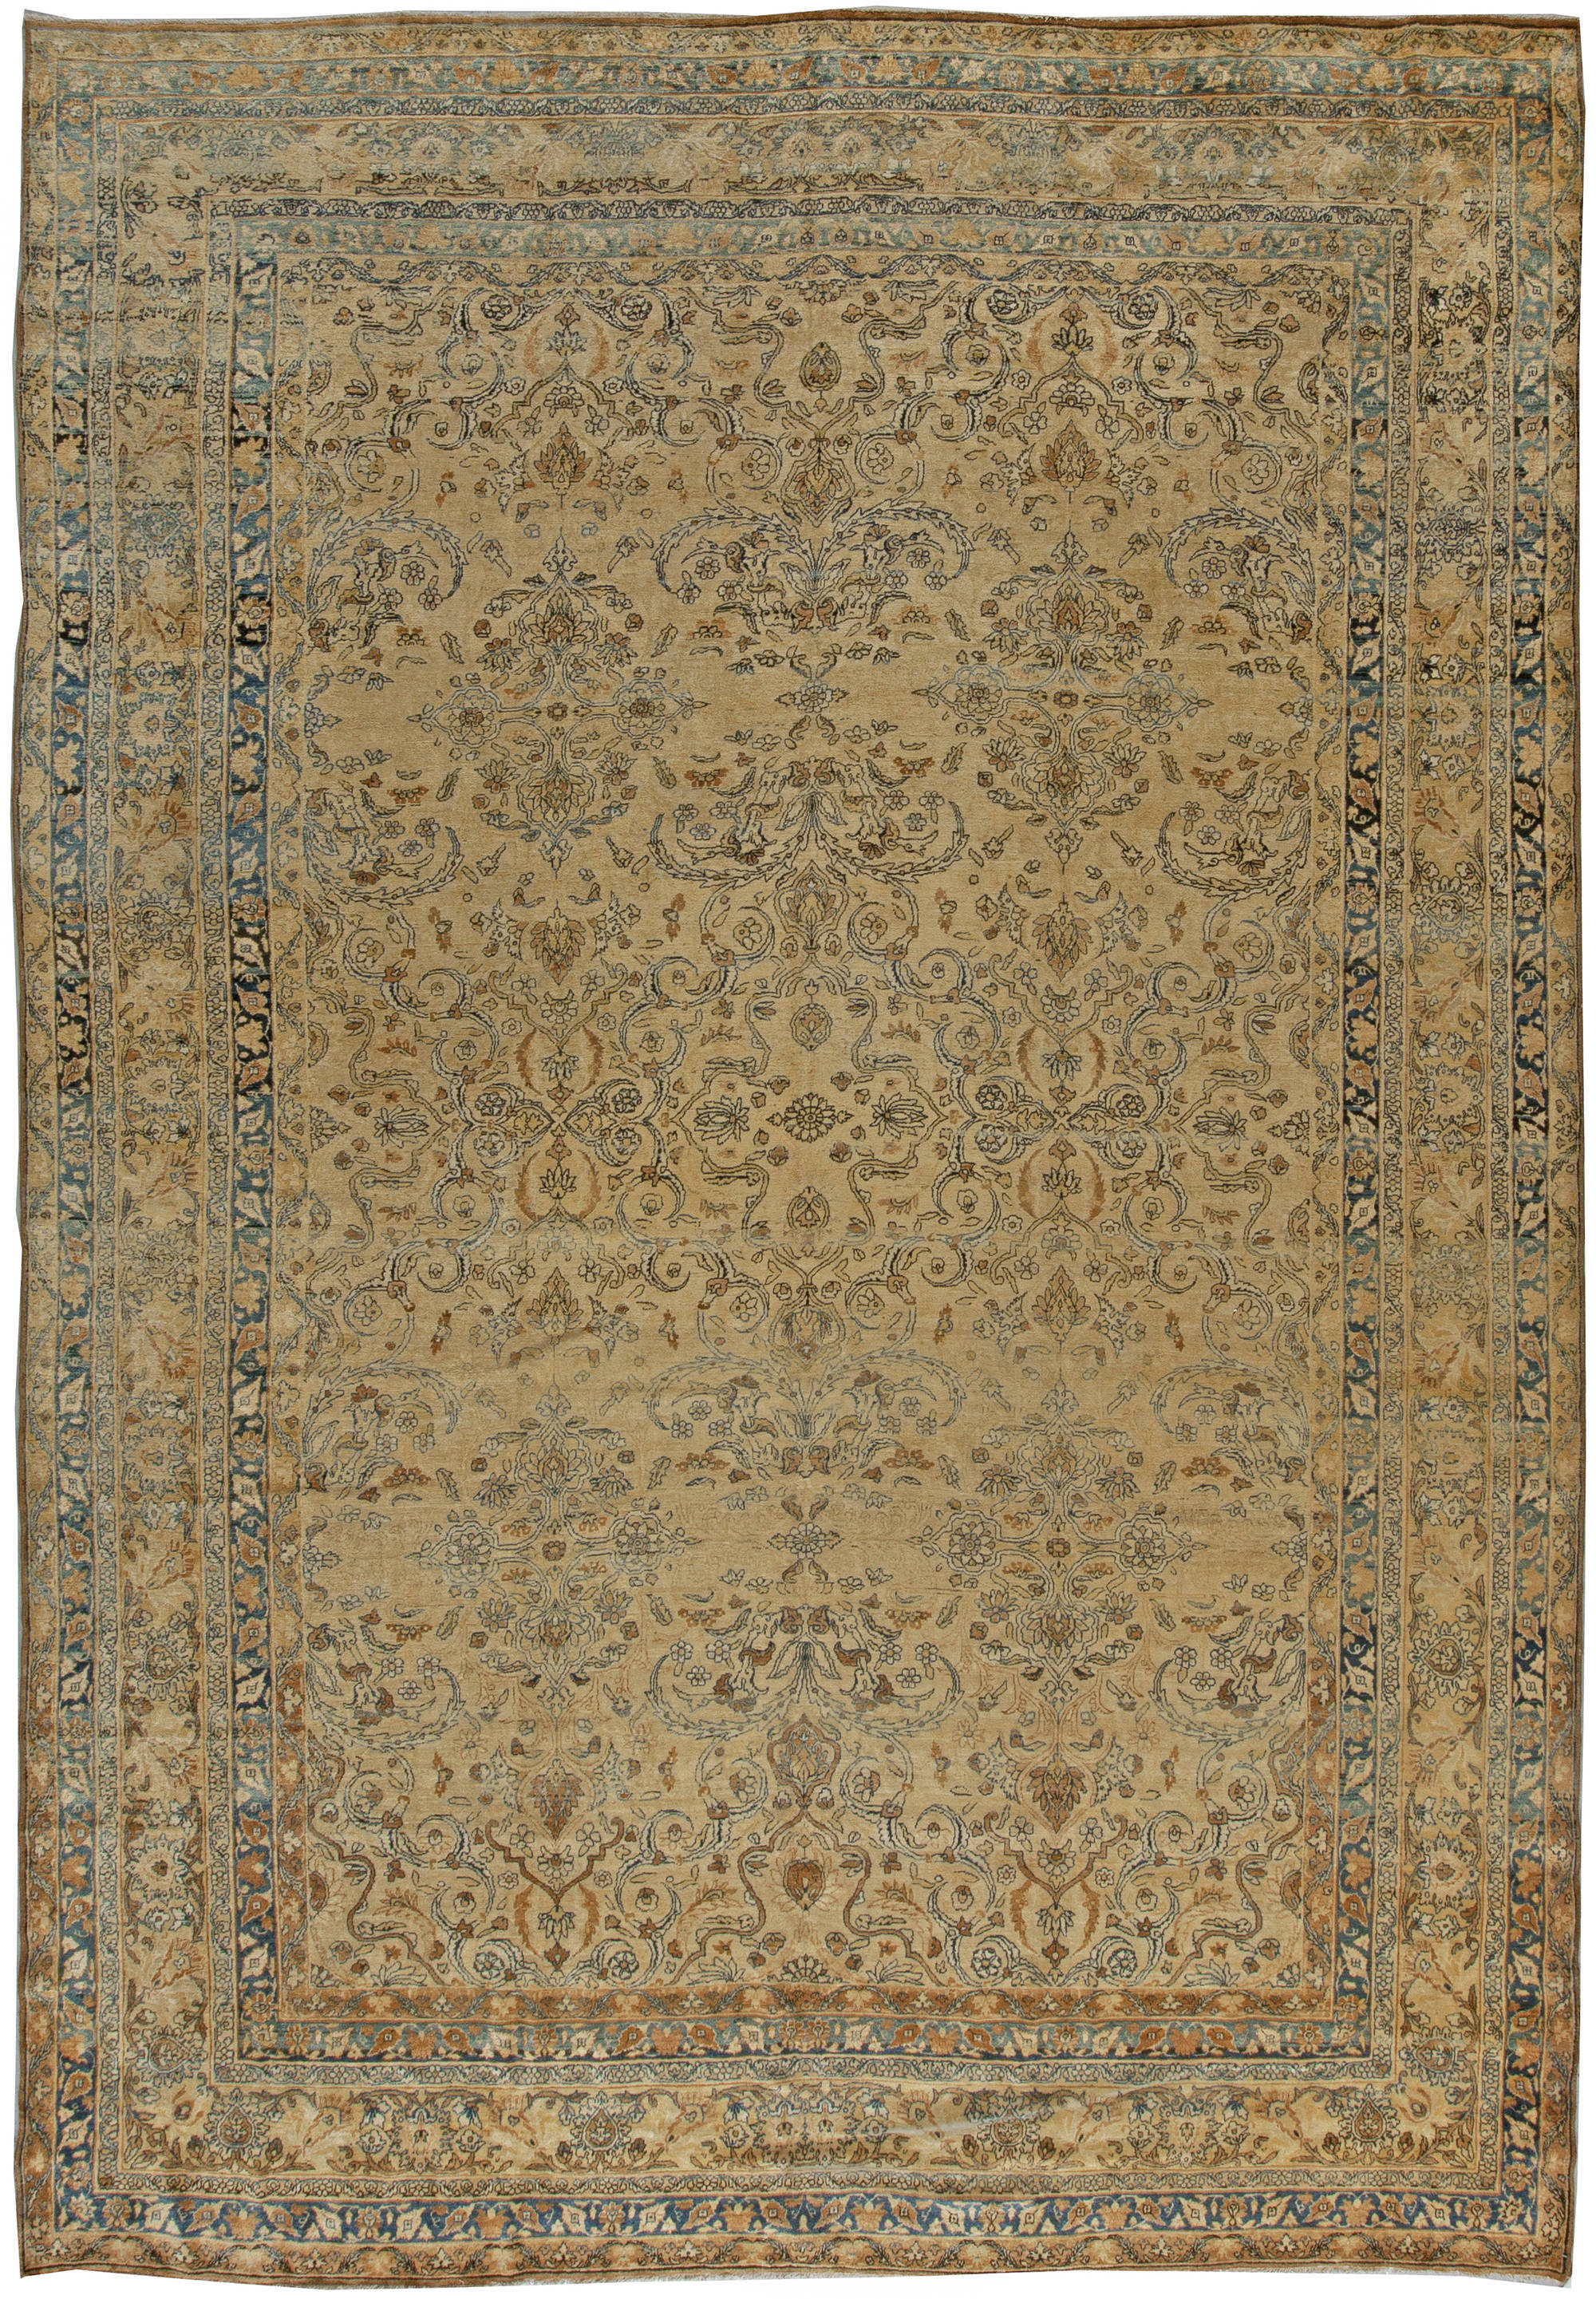 Antique Persian Kirman Carpet BB5551